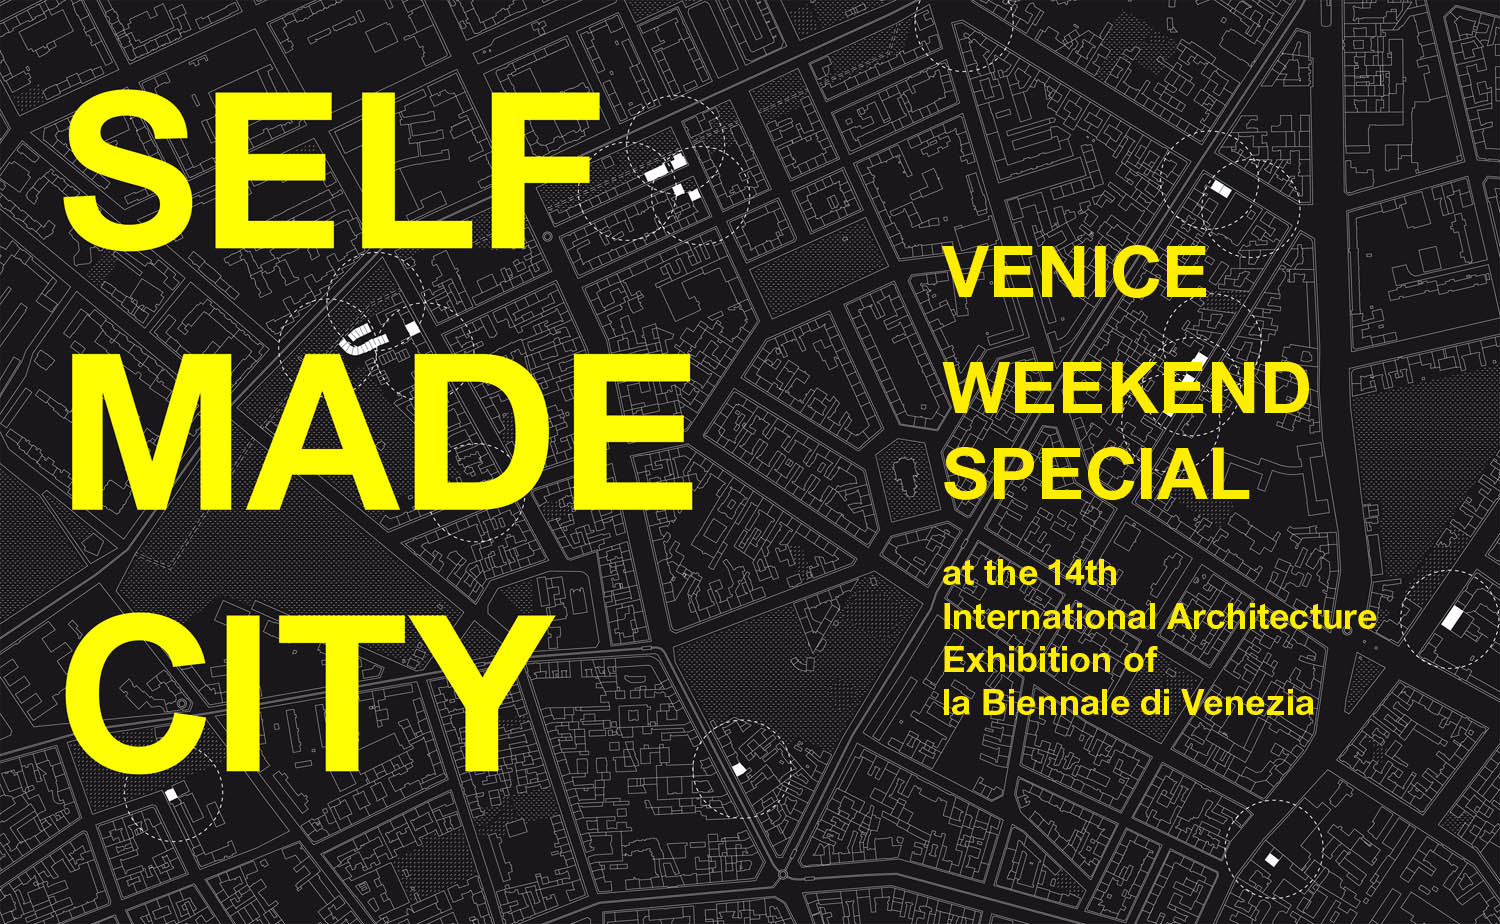 Invitation: Self Made City Venice Weekend Special